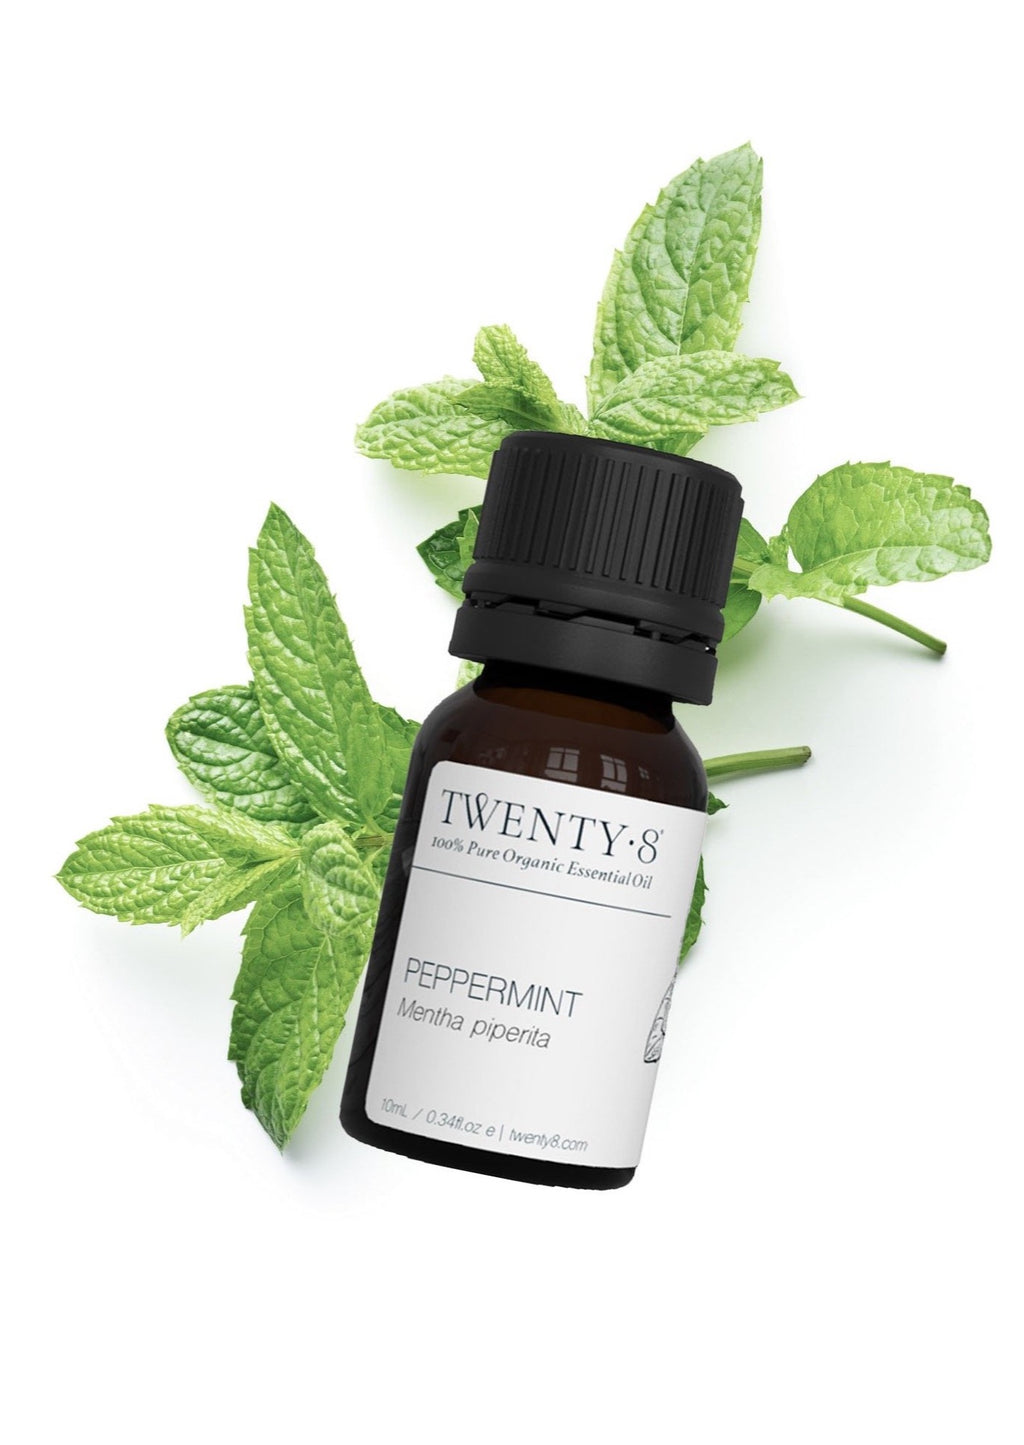 Peppermint - Pure Organic Essential Oil